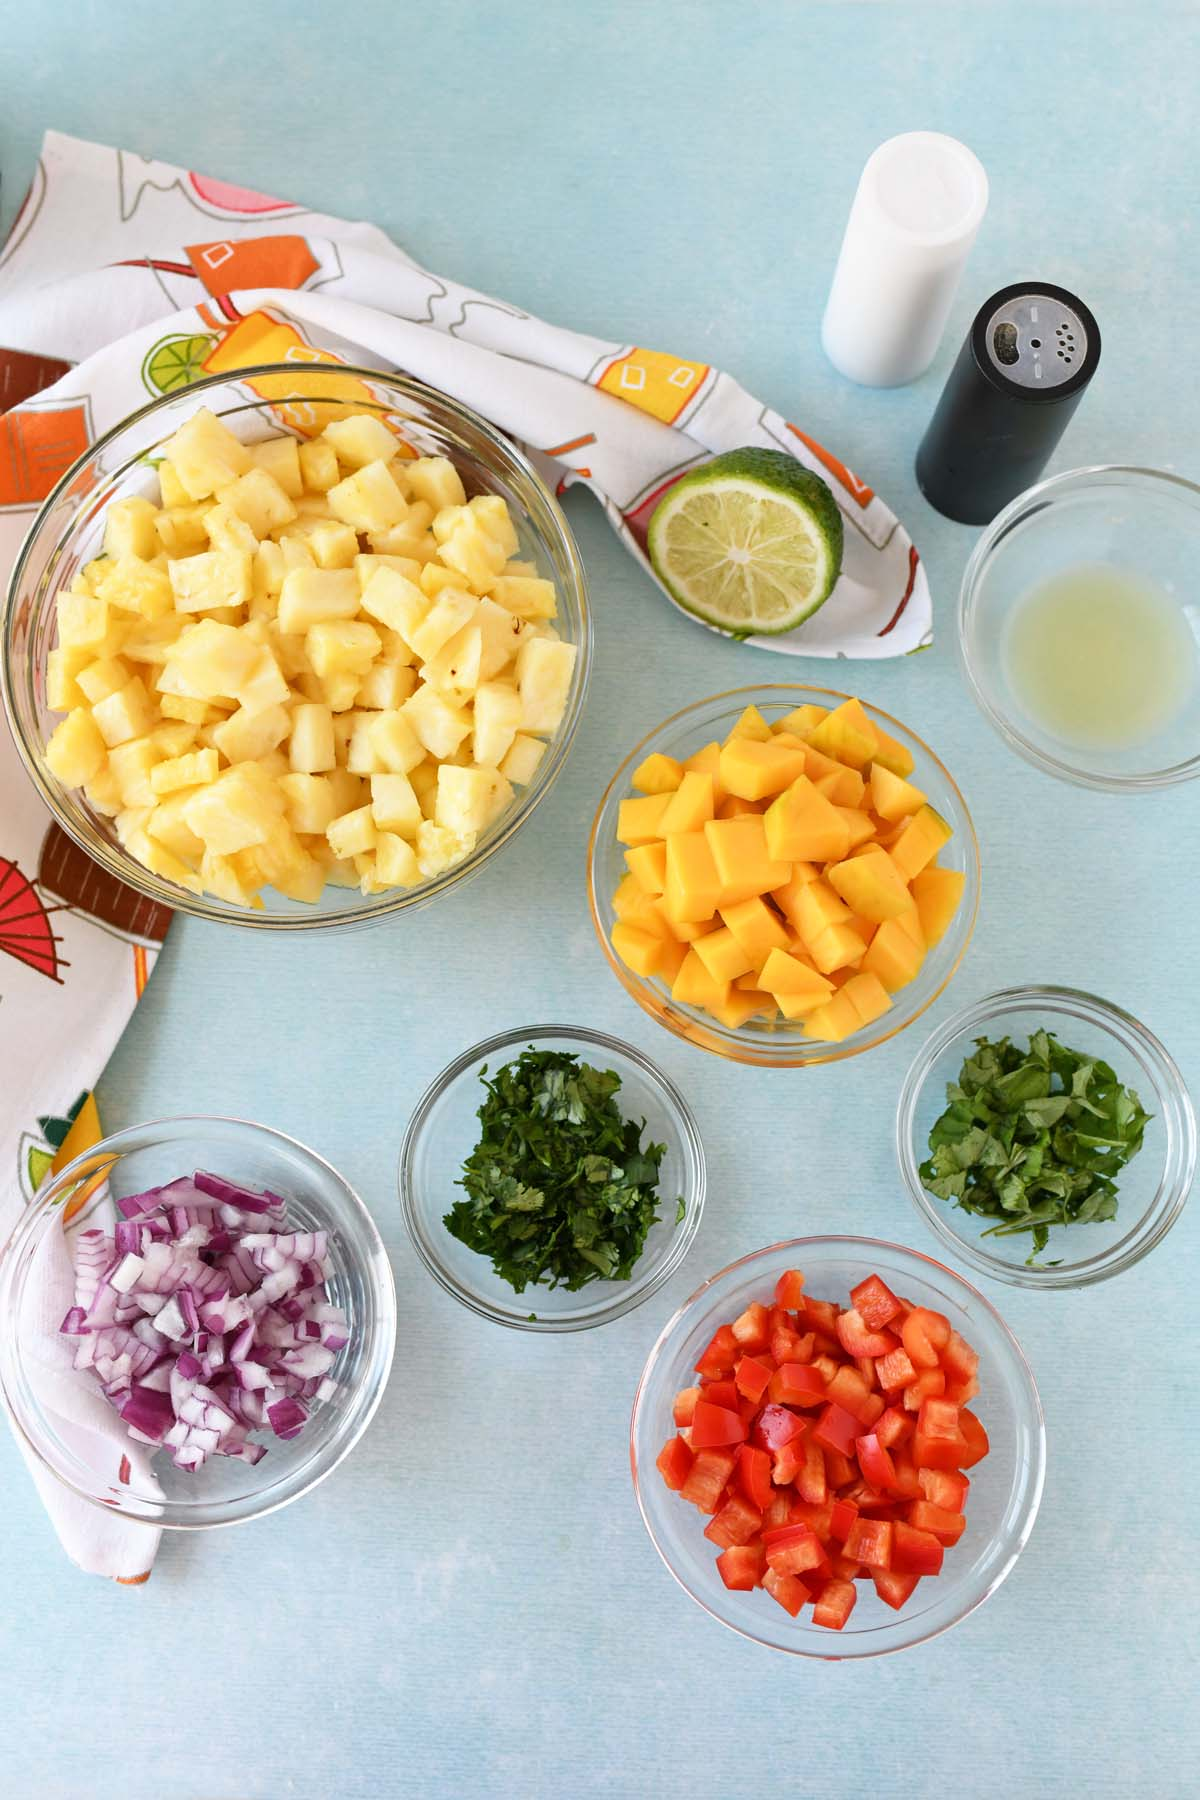 Fresh fruit and vegetables in mini glass bowls that make up pineapple mango salsa ingredients on a blue table.